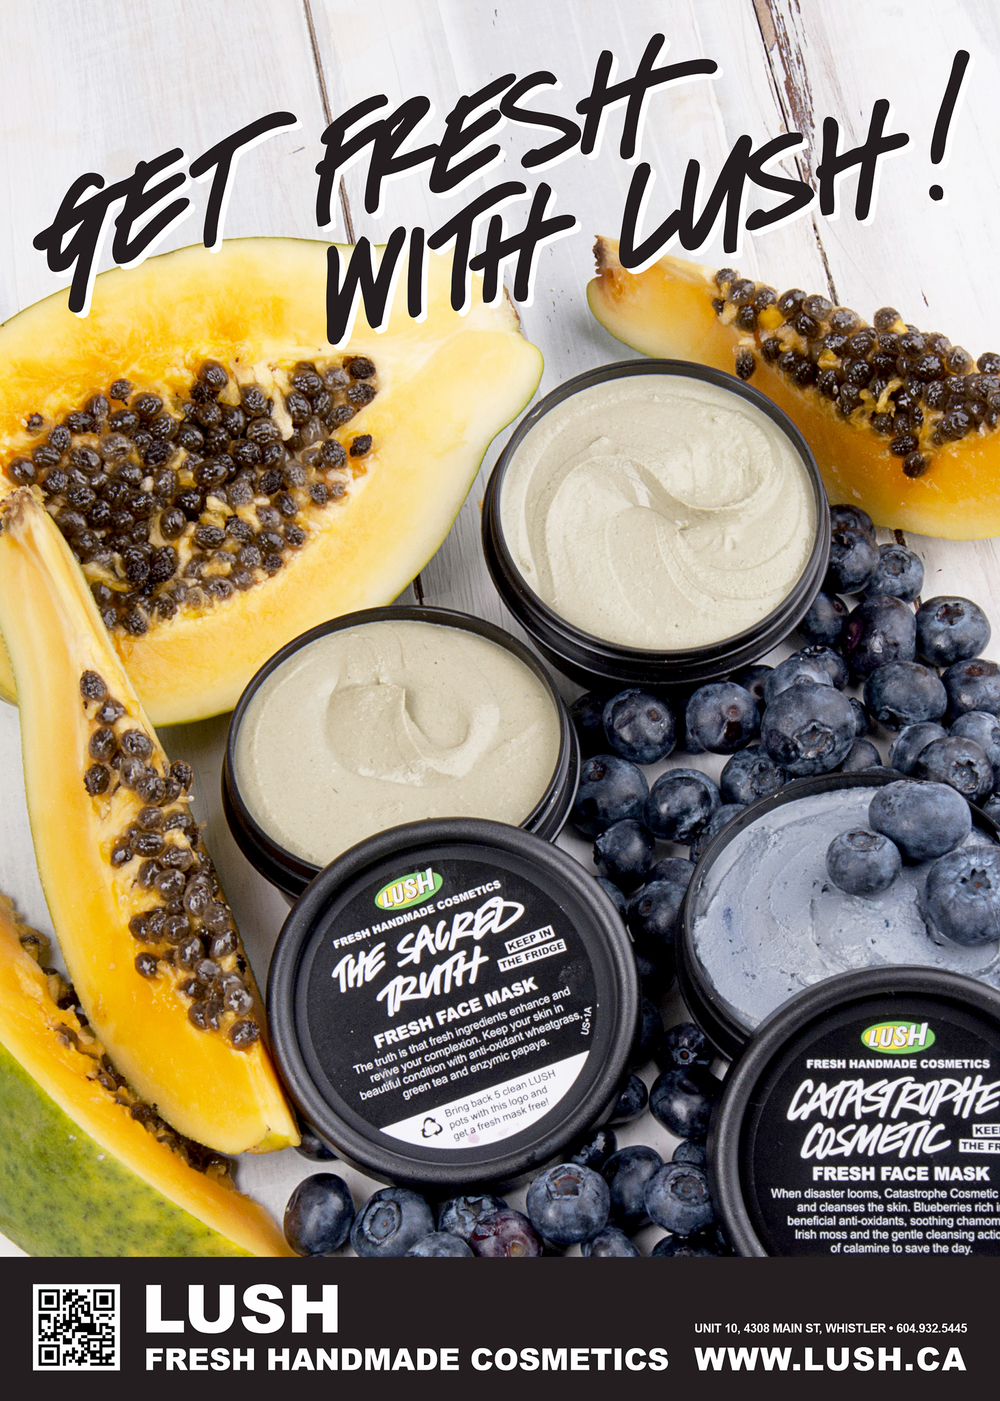 Print Ad for LUSH Cosmetics